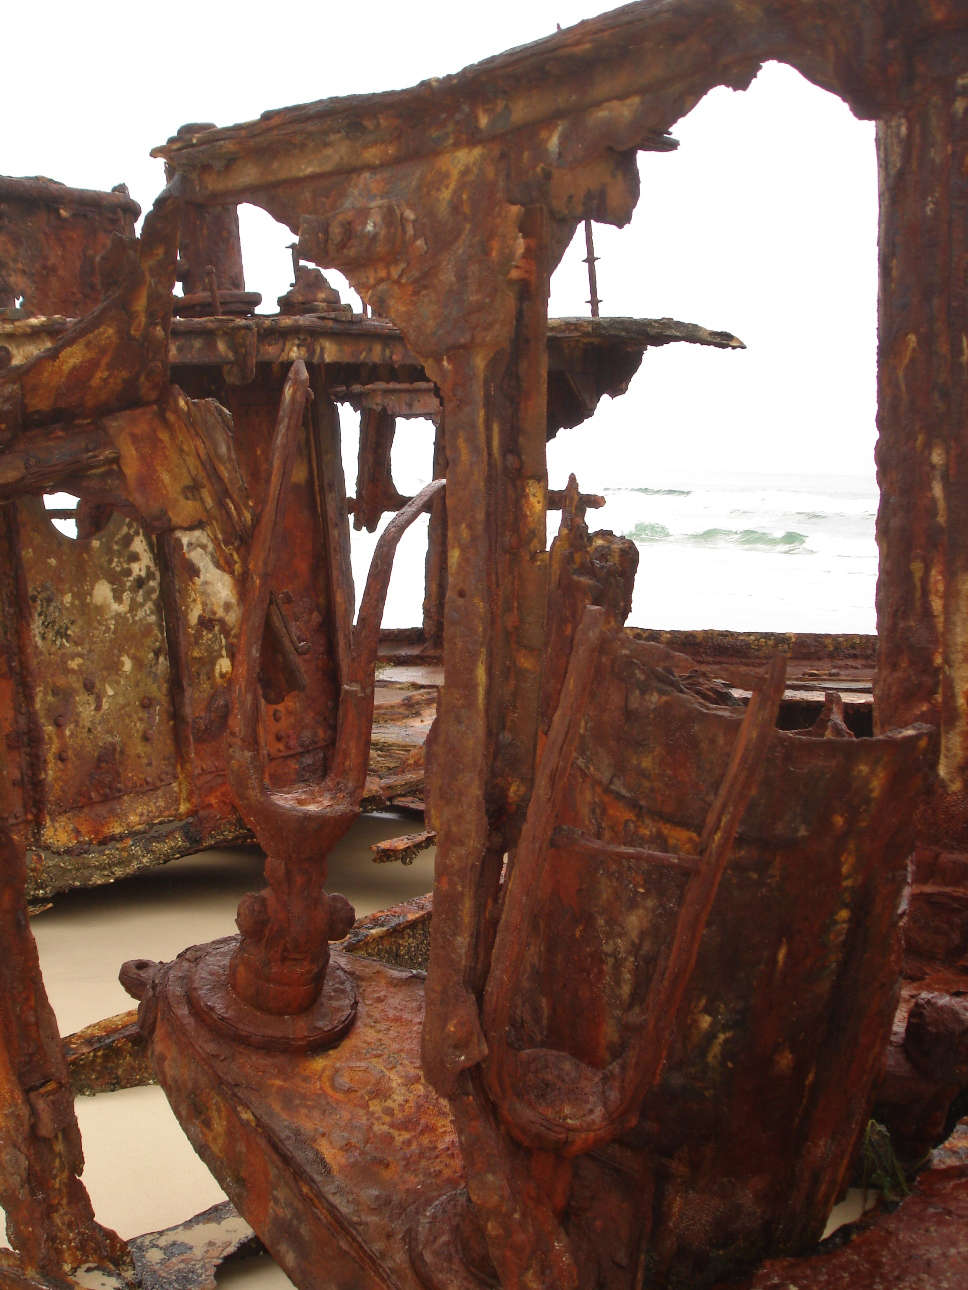 Interior of the Maheno ship wreck